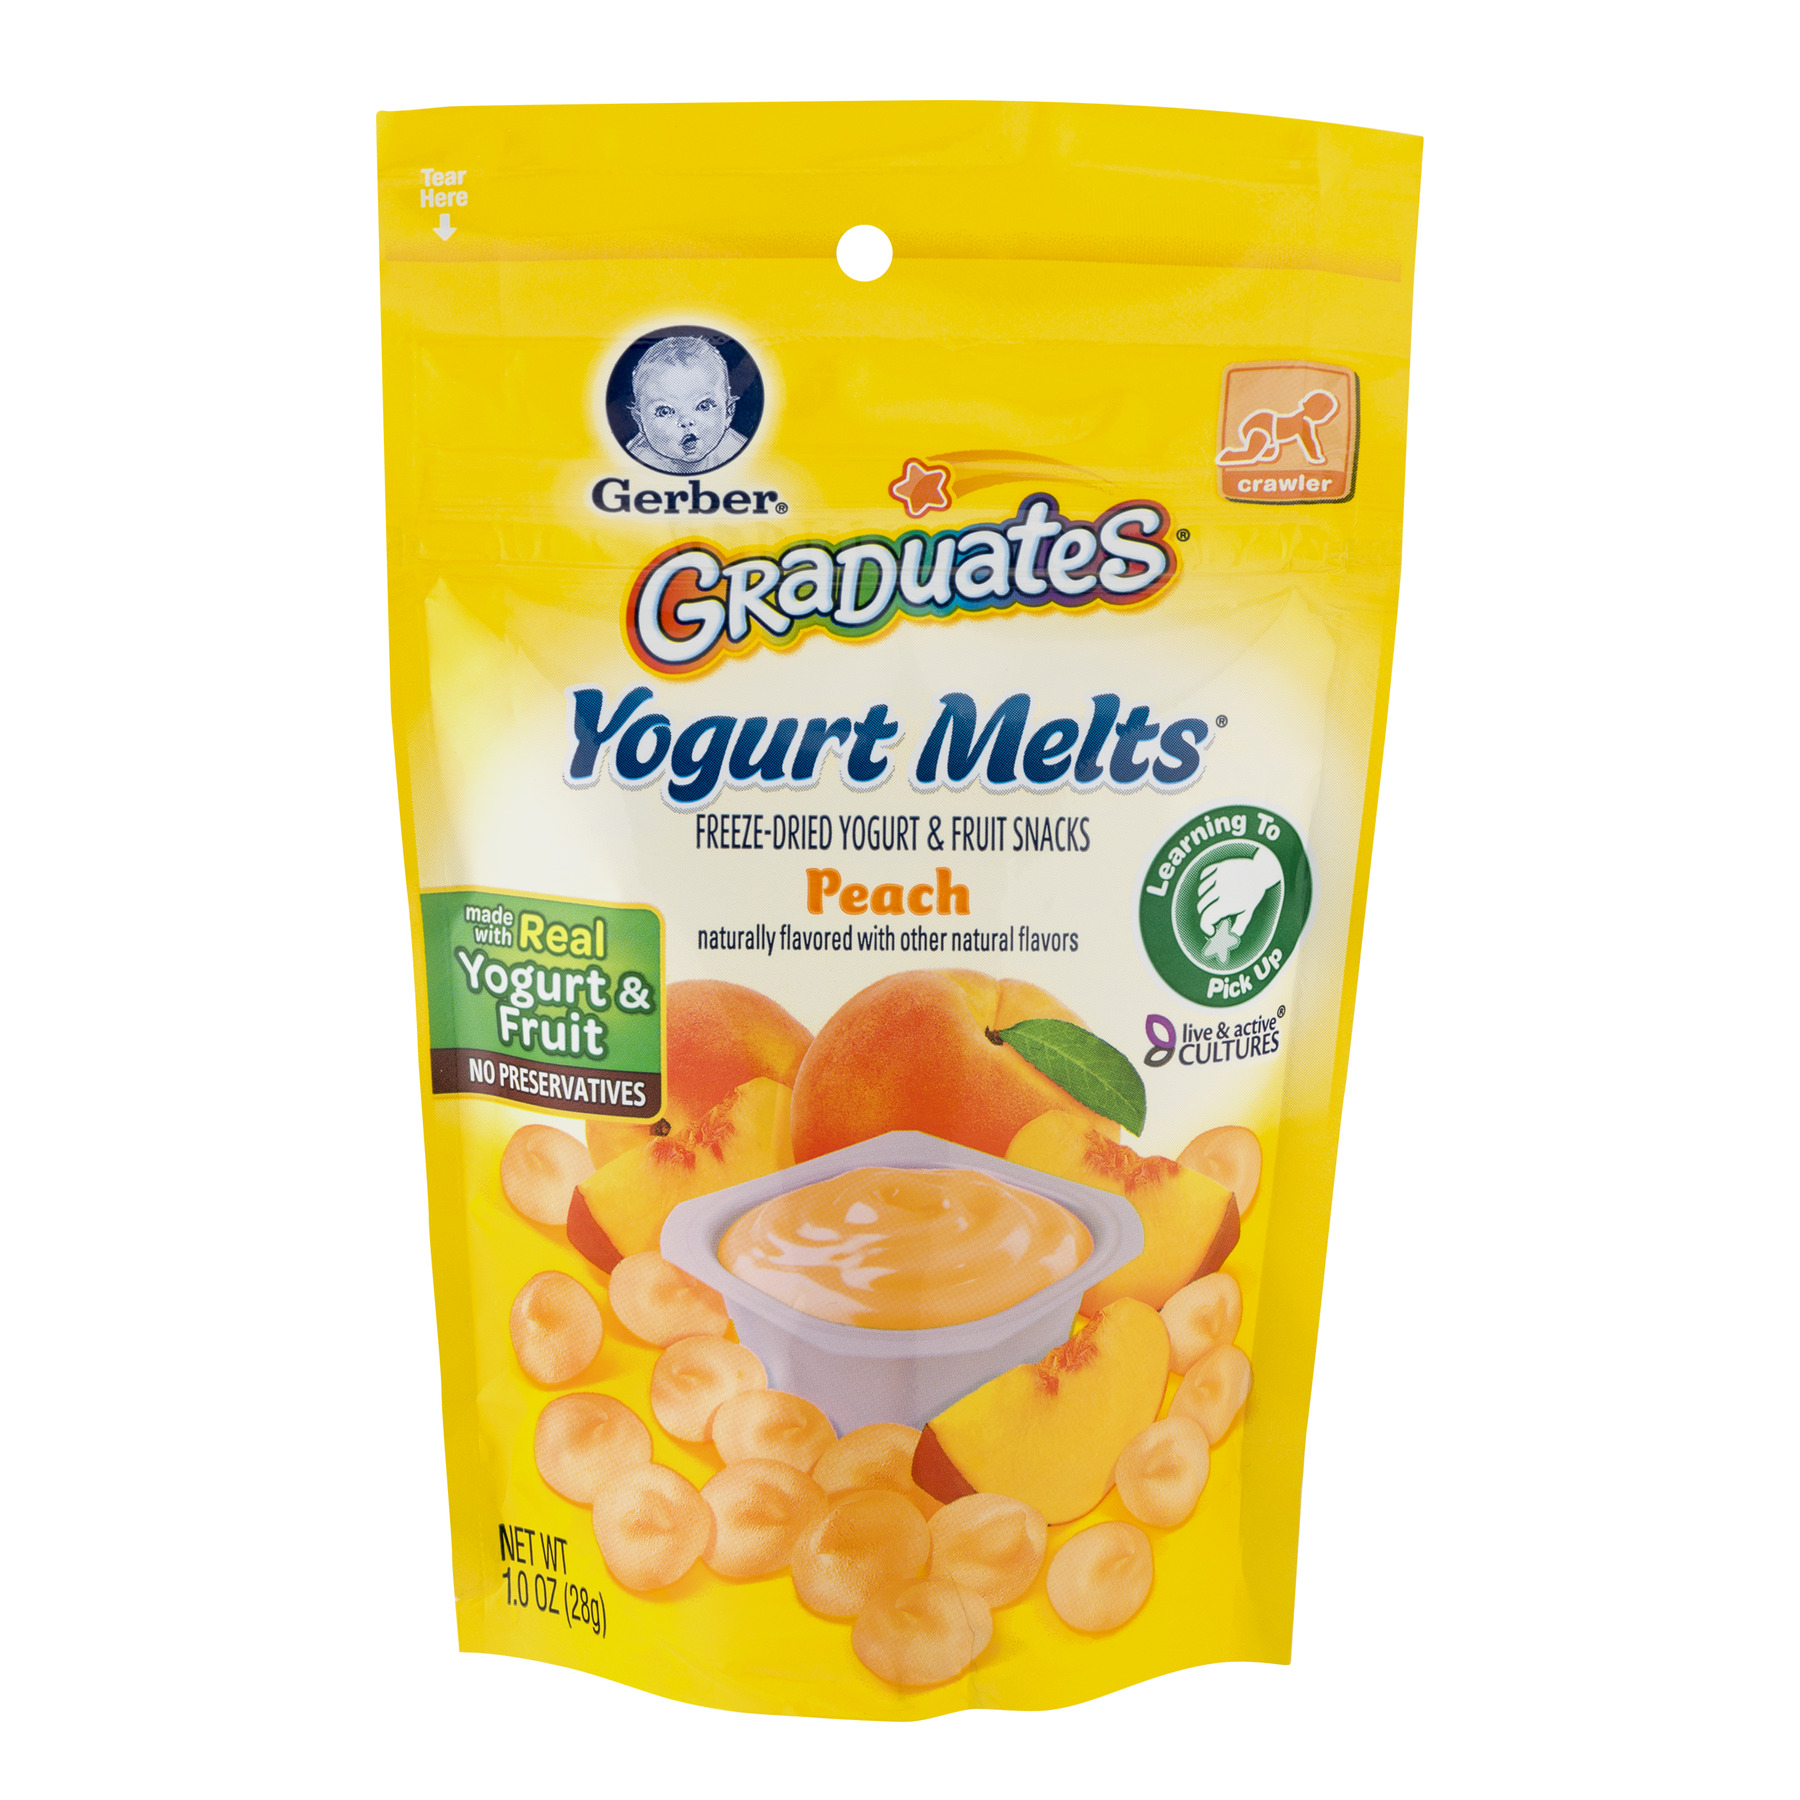 Gerber Graduates Yogurt Melts Peach, 1.0 OZ